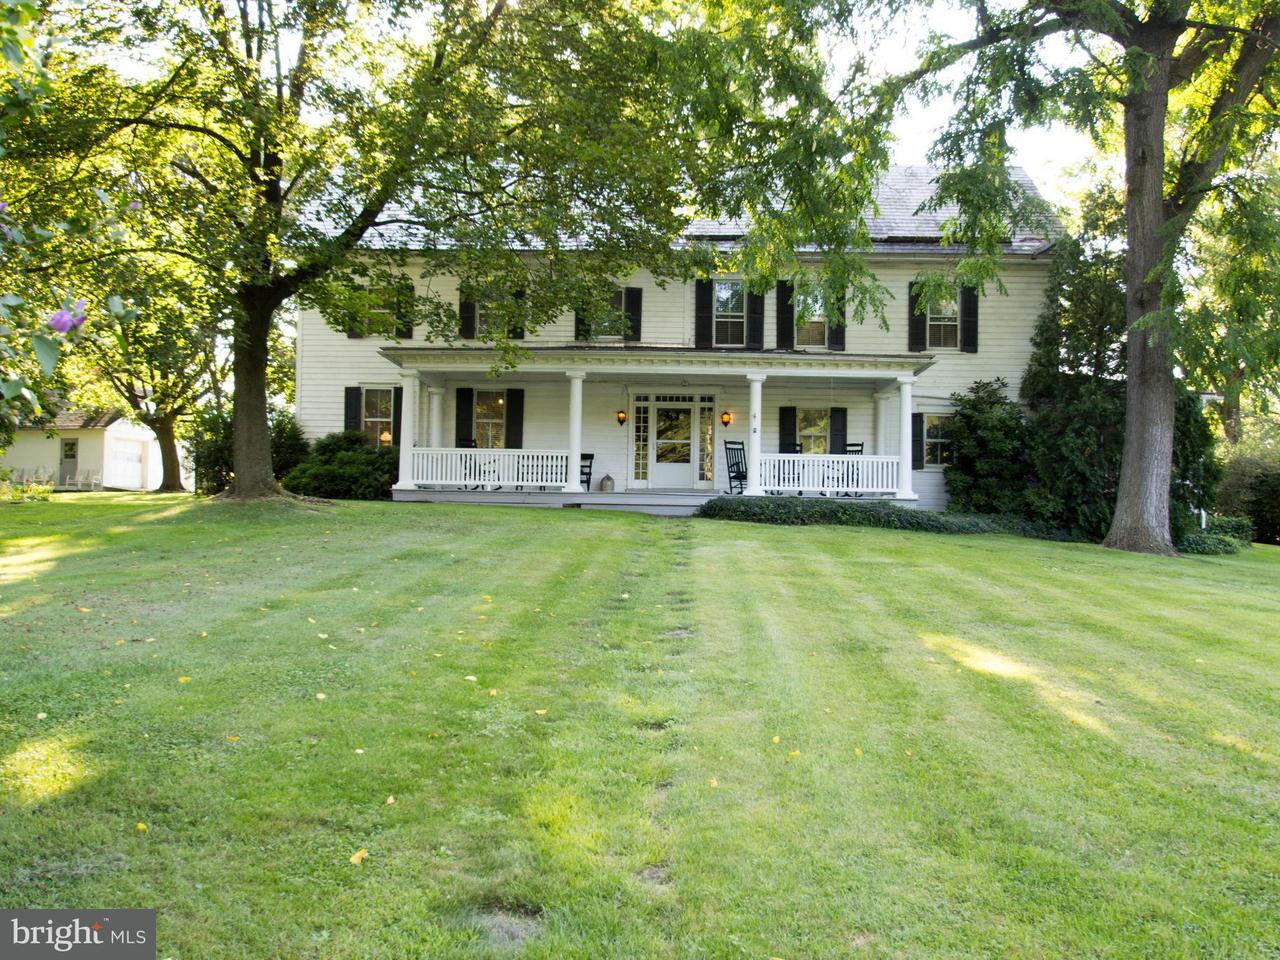 Farm for Sale at 9389 MOLLY PITCHER HWY N 9389 MOLLY PITCHER HWY N Greencastle, Pennsylvania 17225 United States